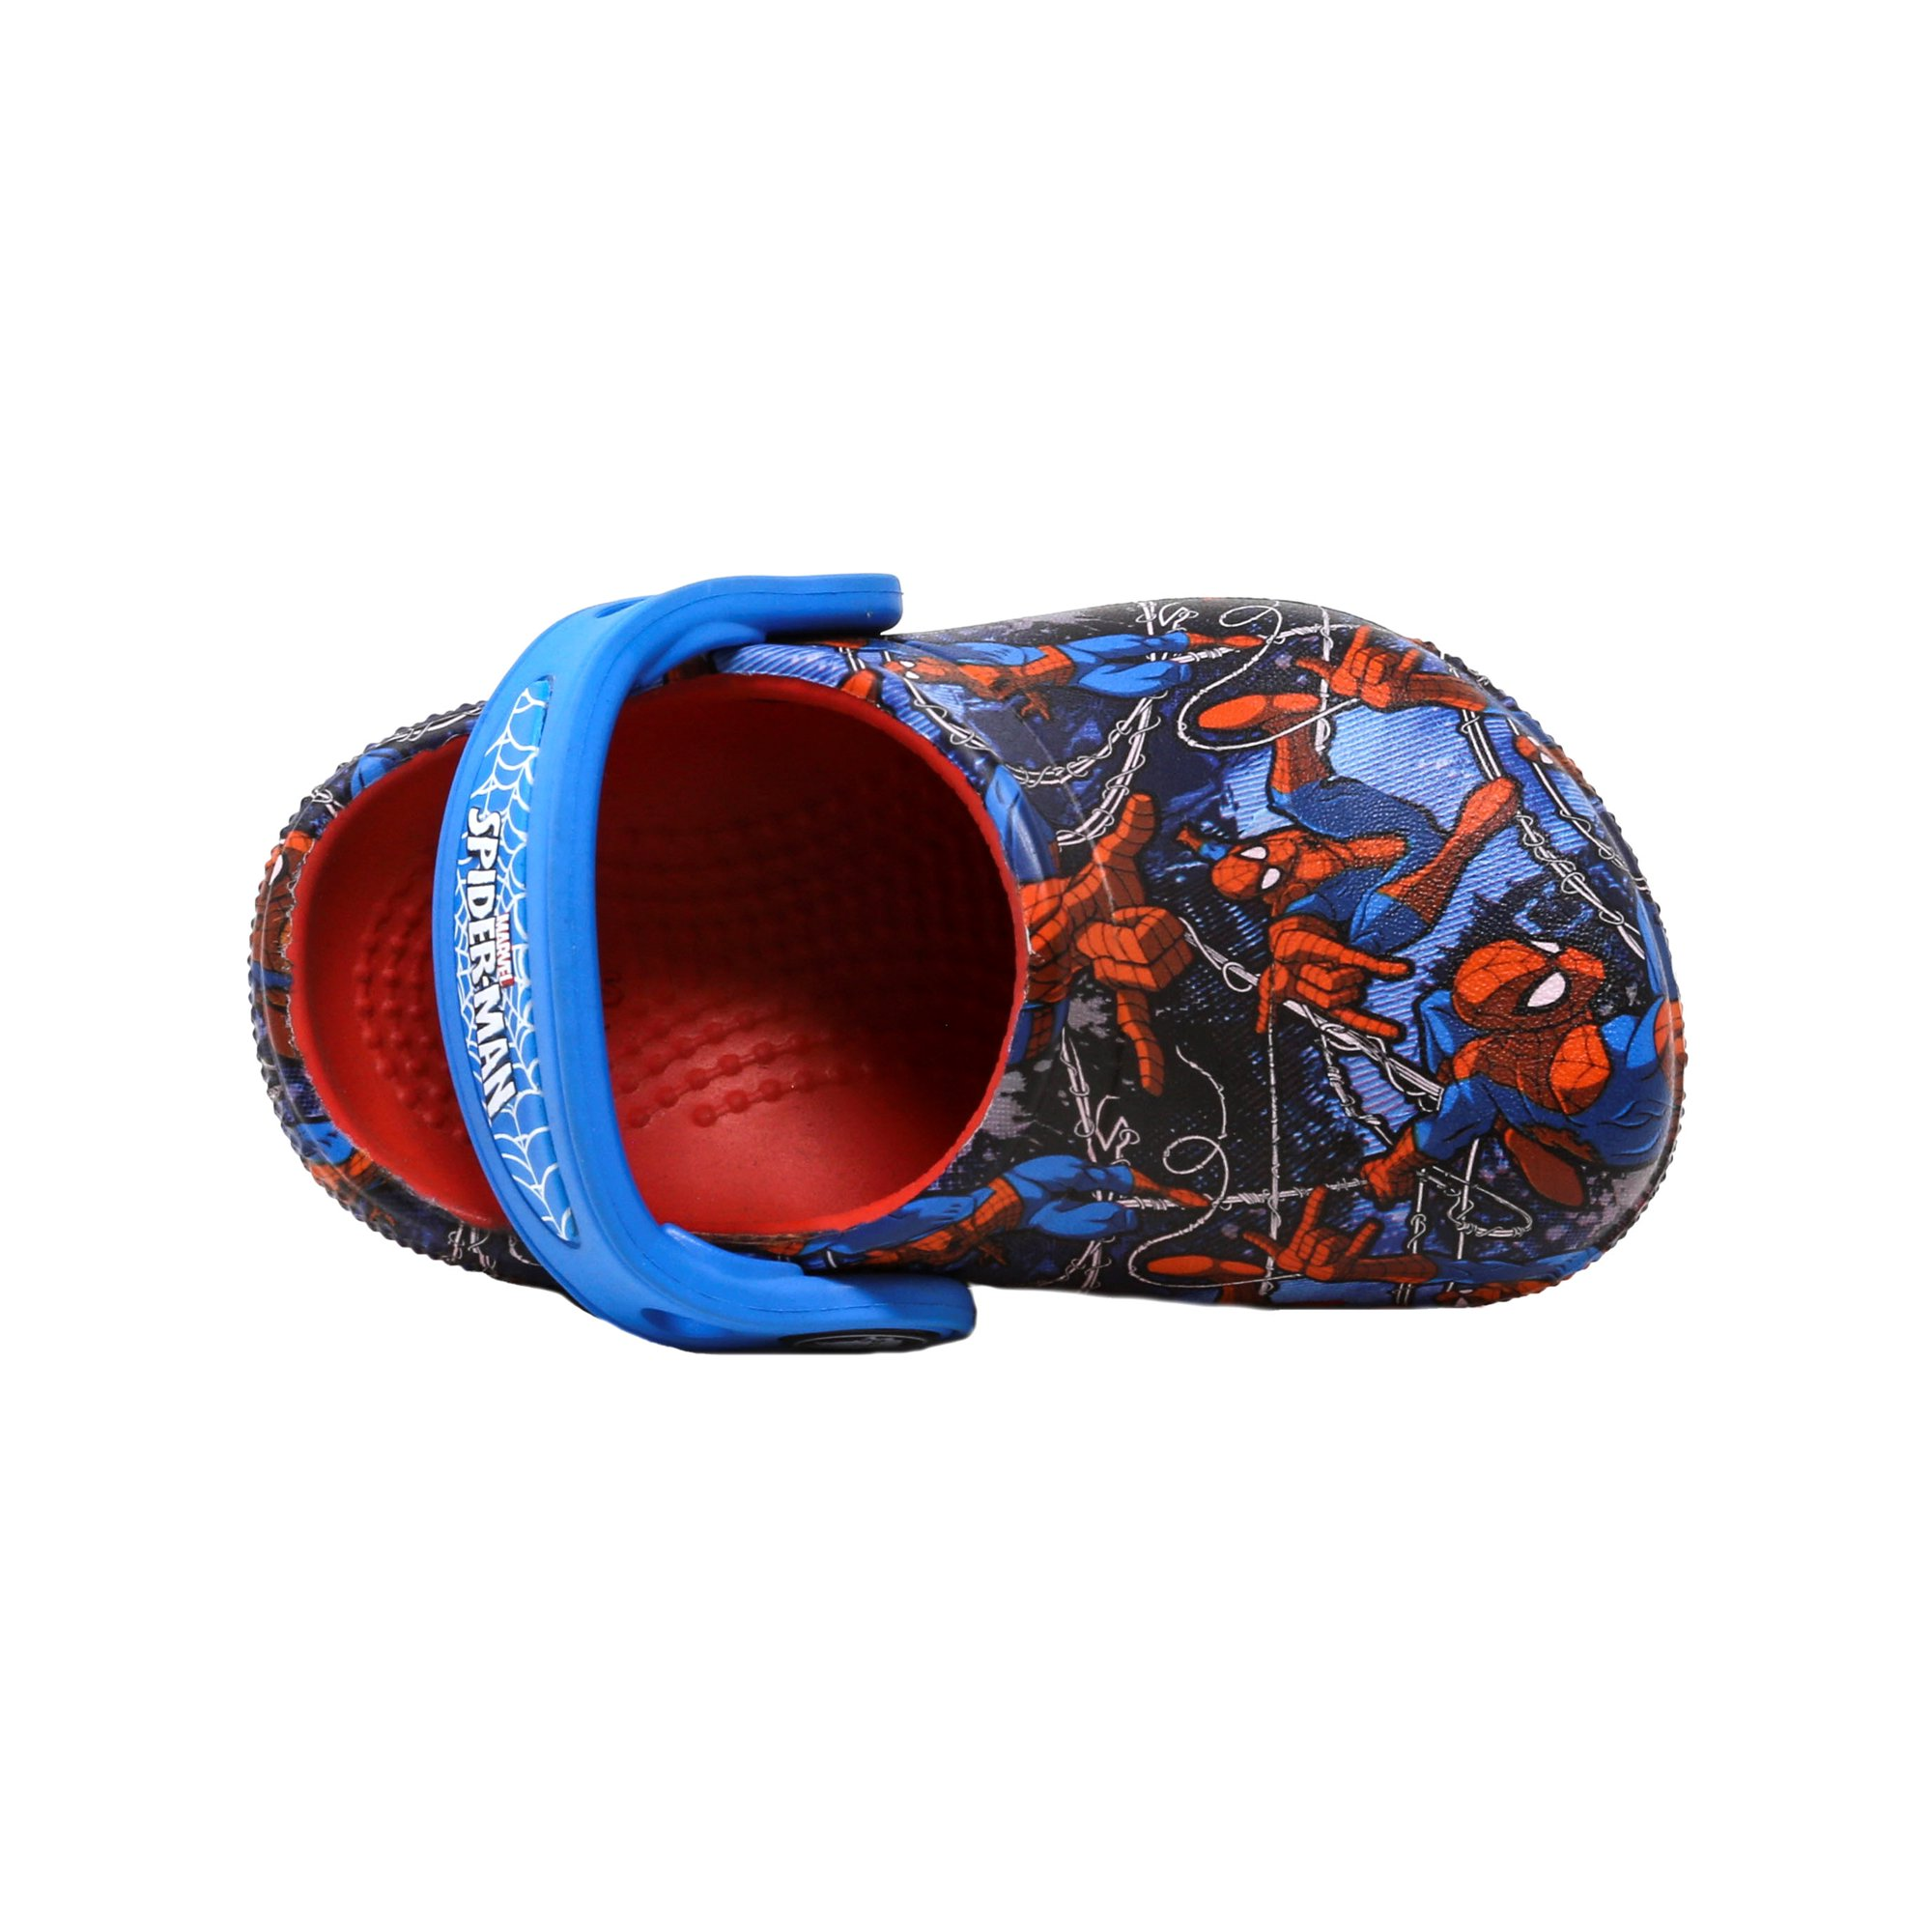 44e647e1f83965 Buy Crocs Crocsfunlab Spiderman Flame Ankle-High Clogs - 5M ...